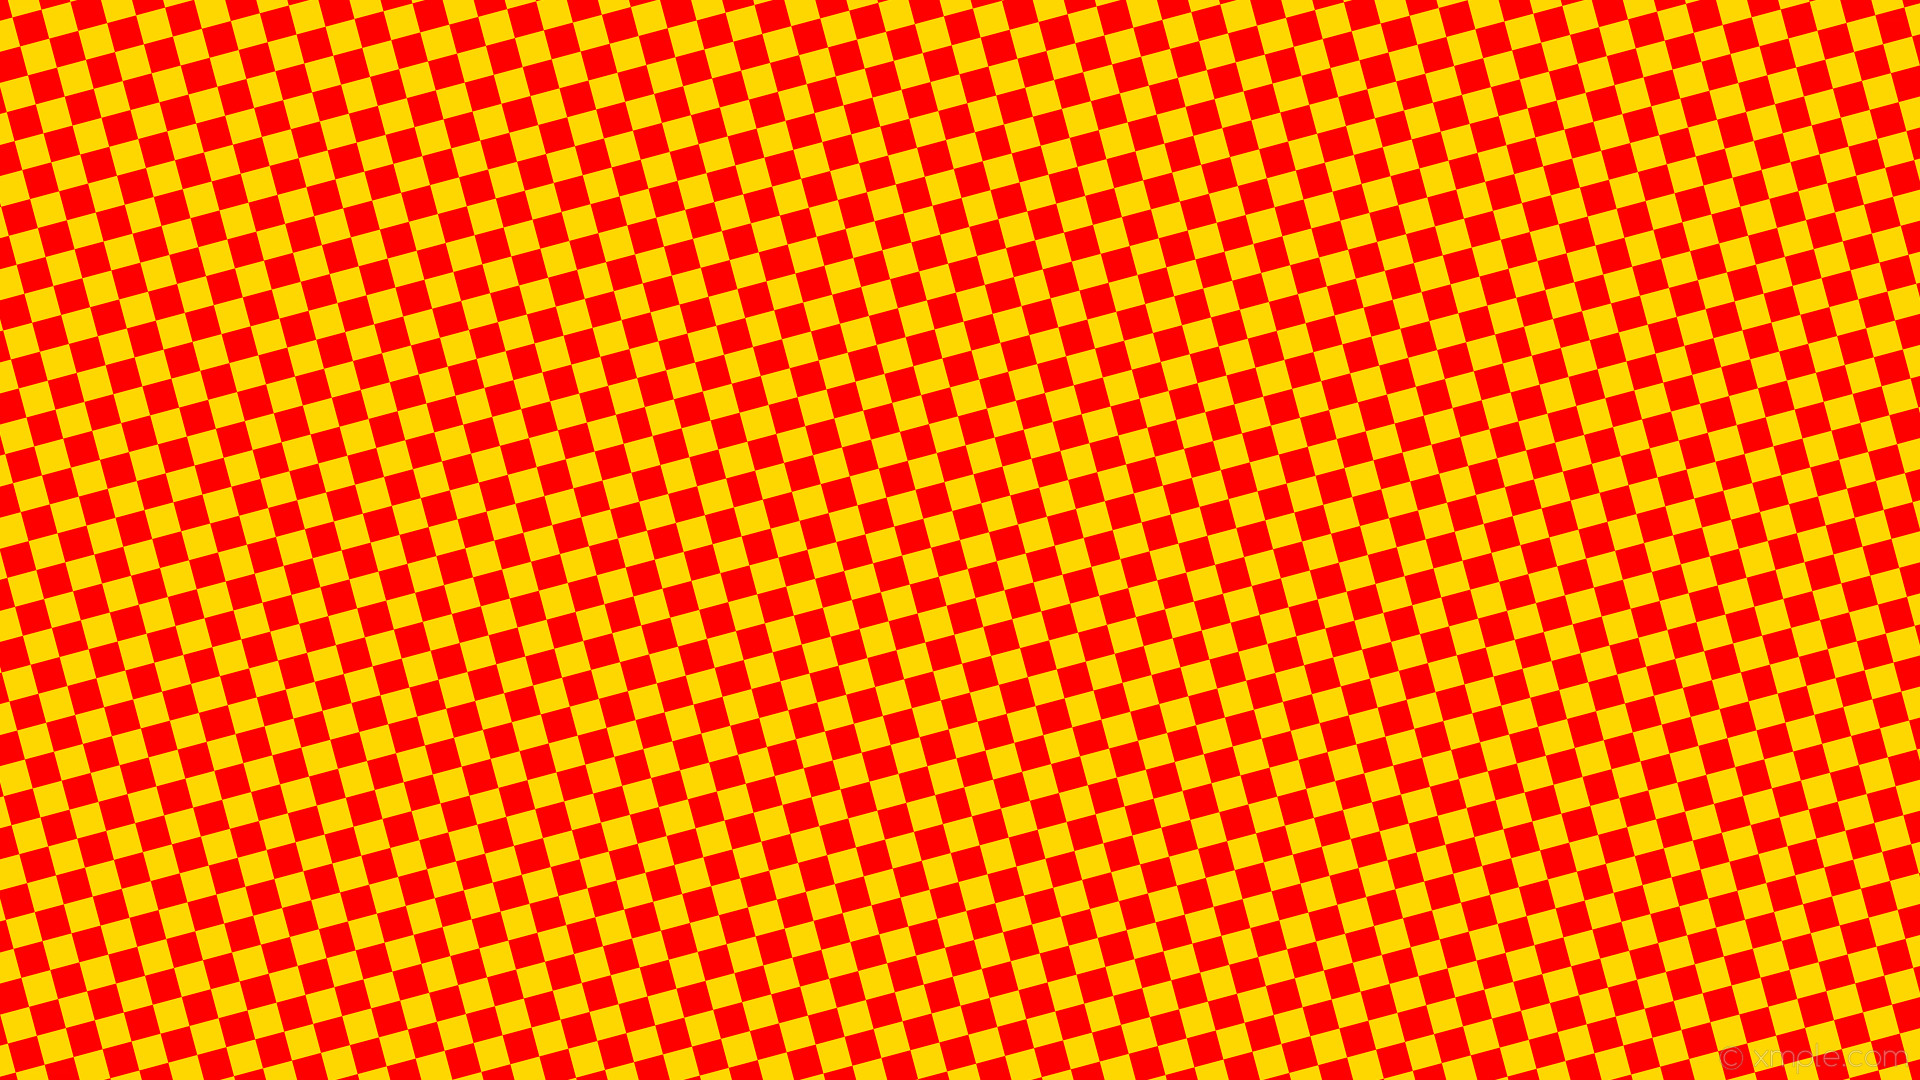 1920x1080 wallpaper squares checkered yellow red gold #ffd700 #ff0000 diagonal 15°  30px